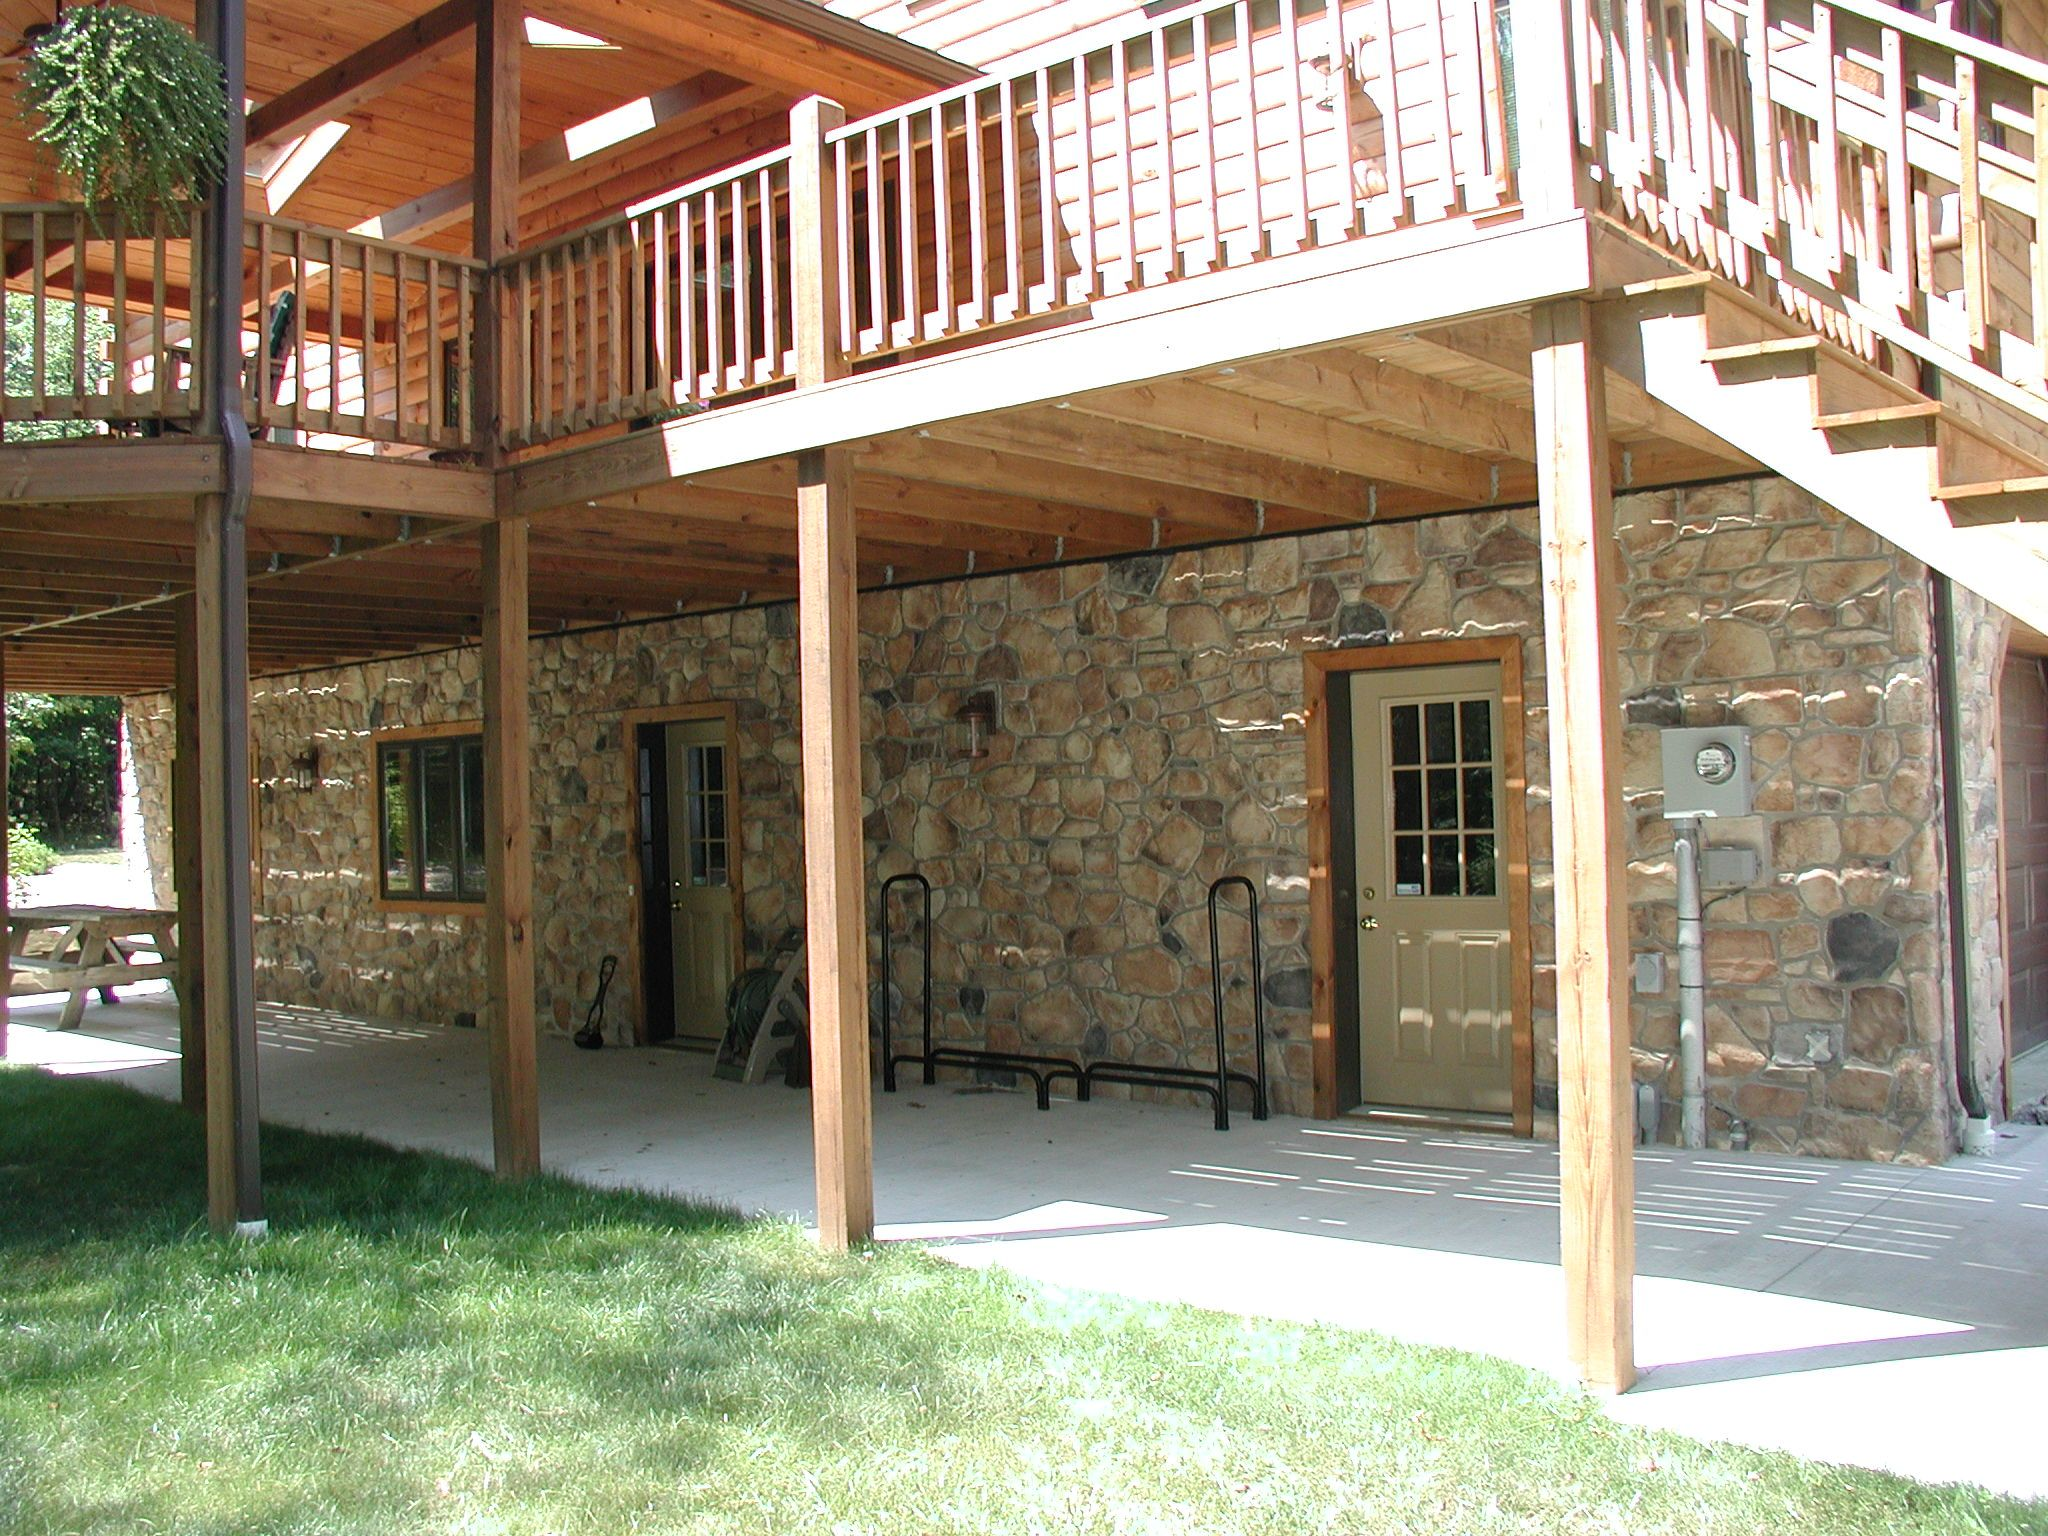 timber frame homes | ... Stone make it perfect for accenting log and timber frame homes